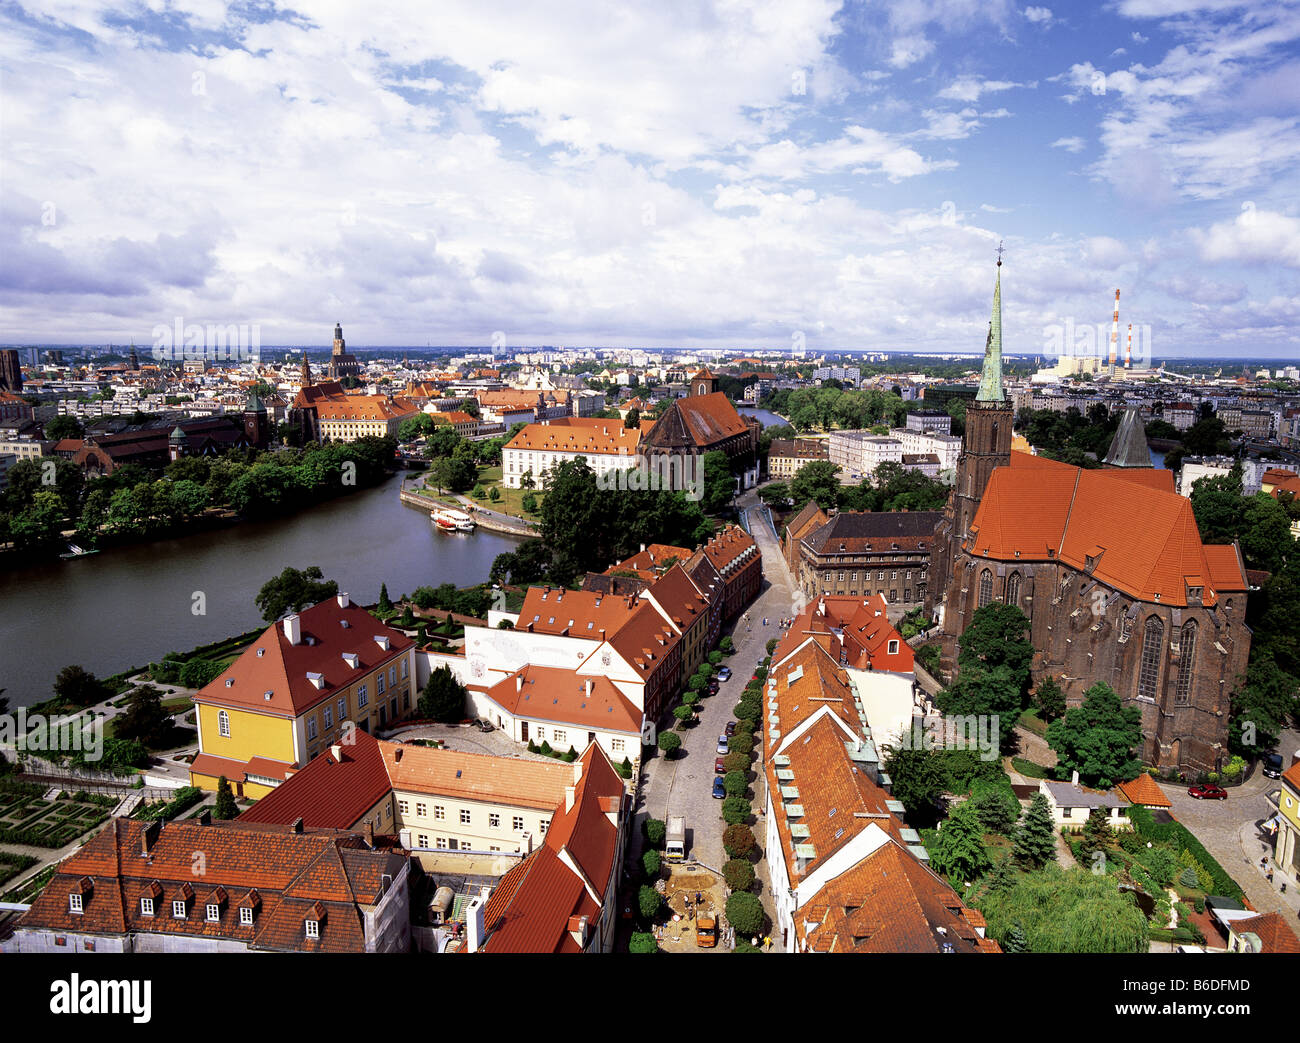 View of River Oder and city skyline of Wroclaw, Poland from Cathedral spire - Stock Image